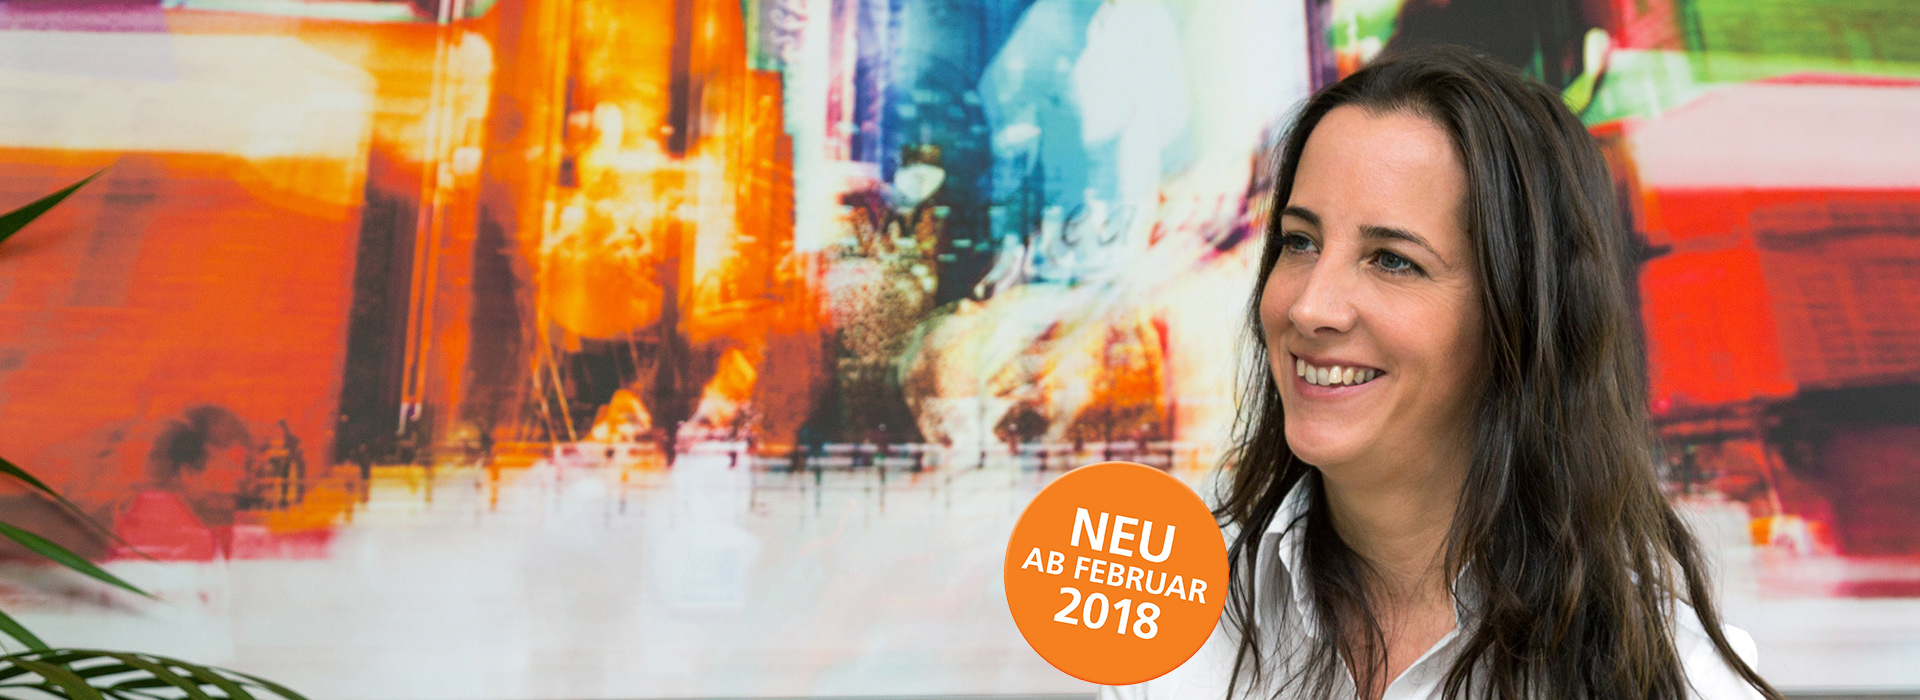 nele-braun-sello